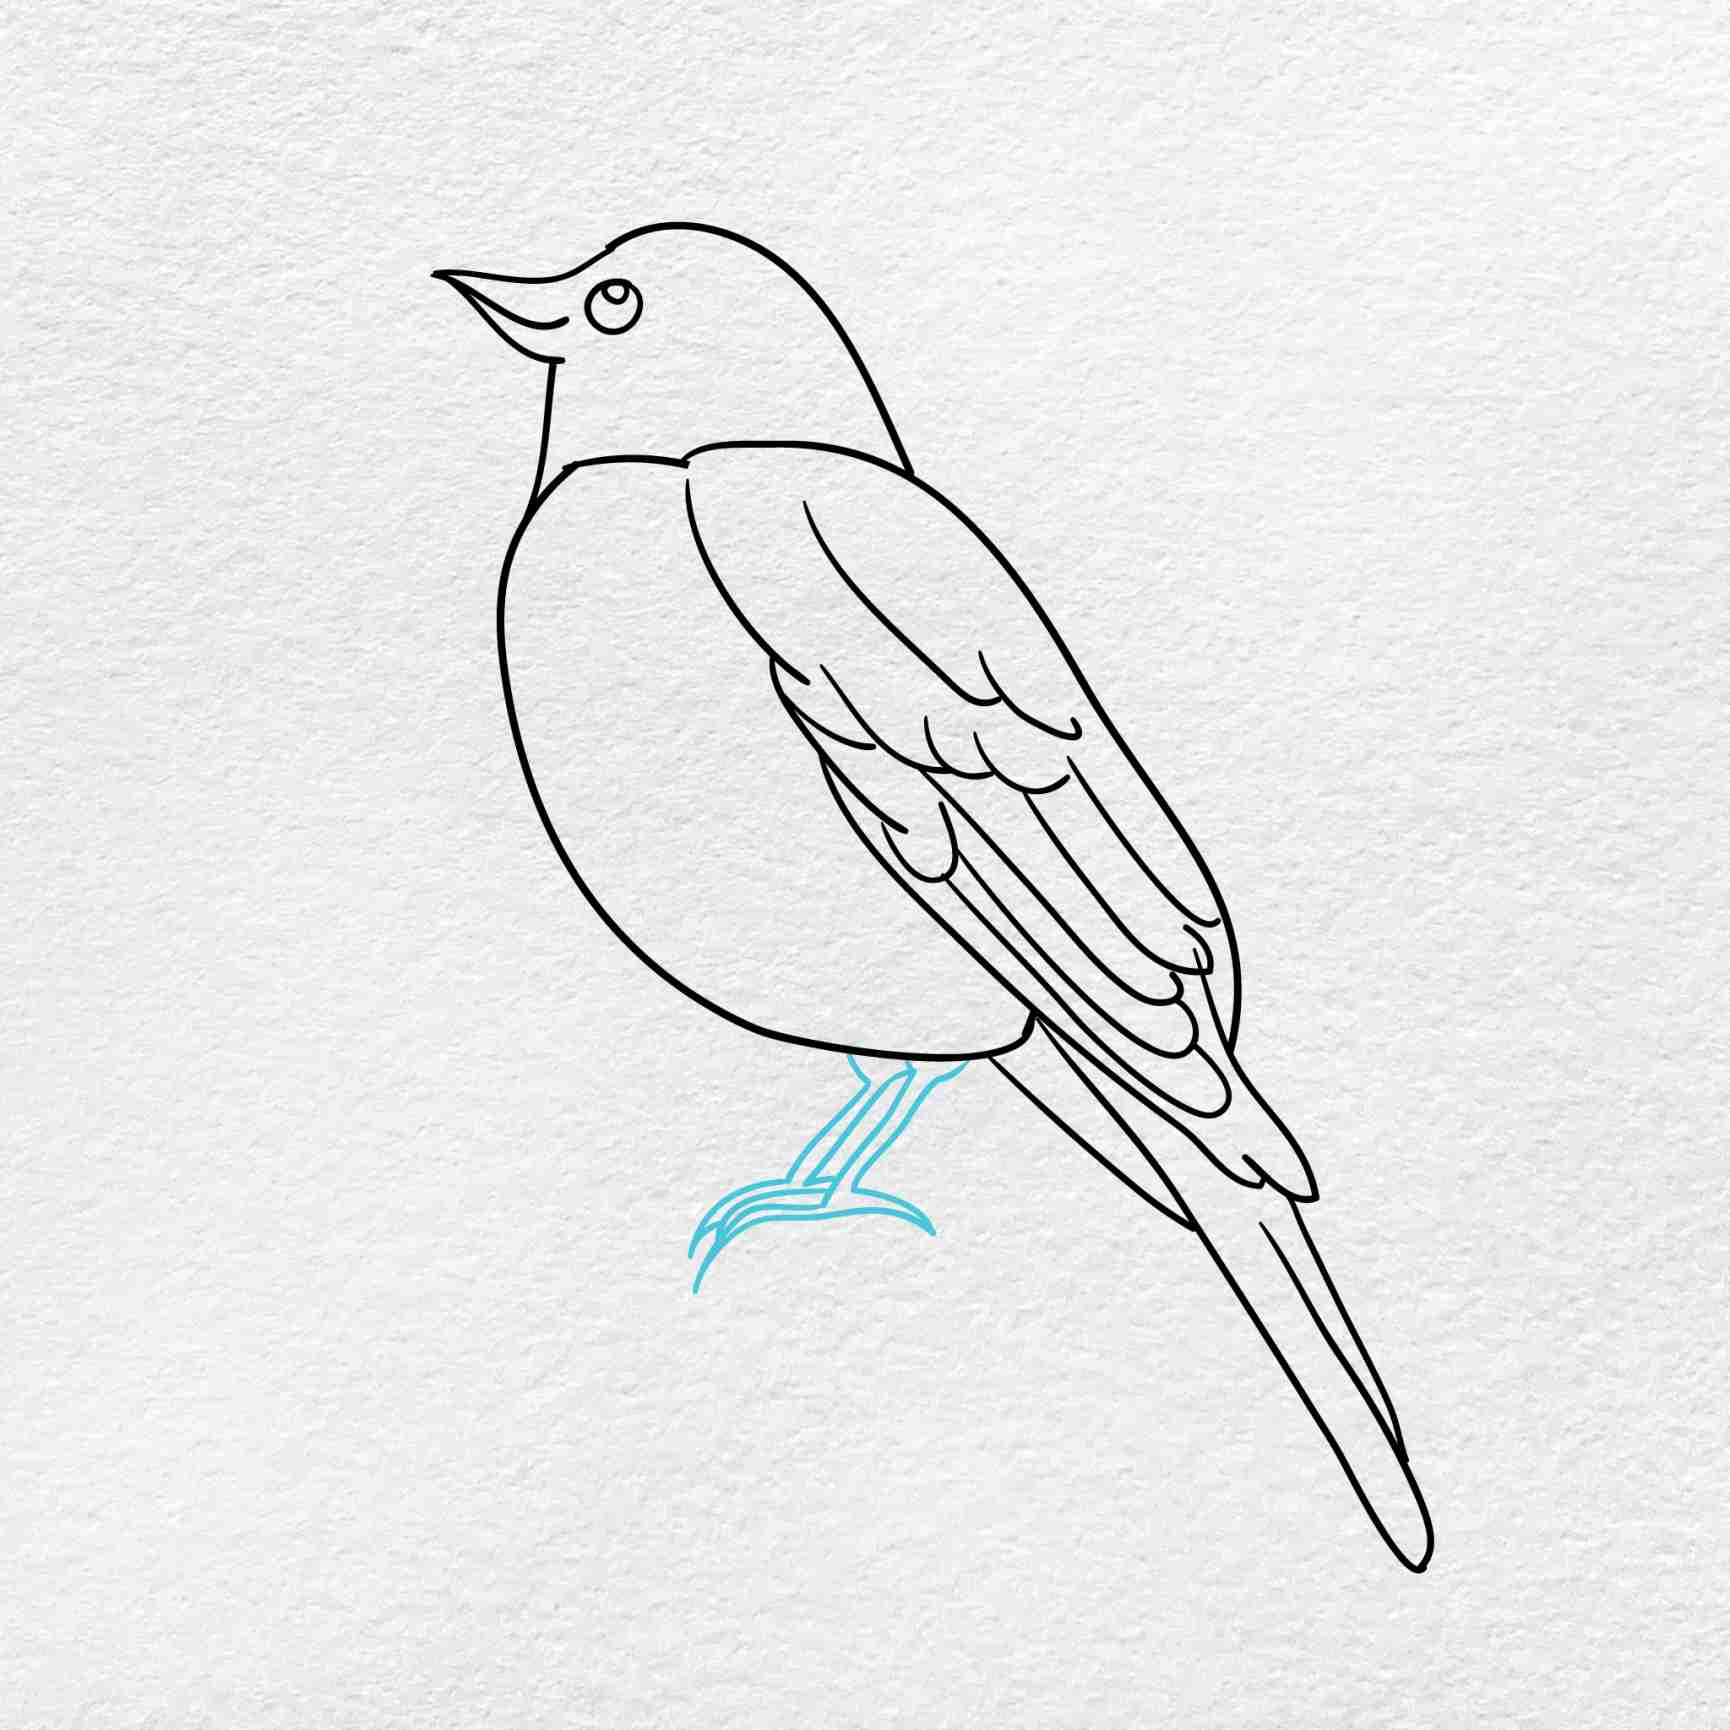 How To Draw A Robin: Step 5